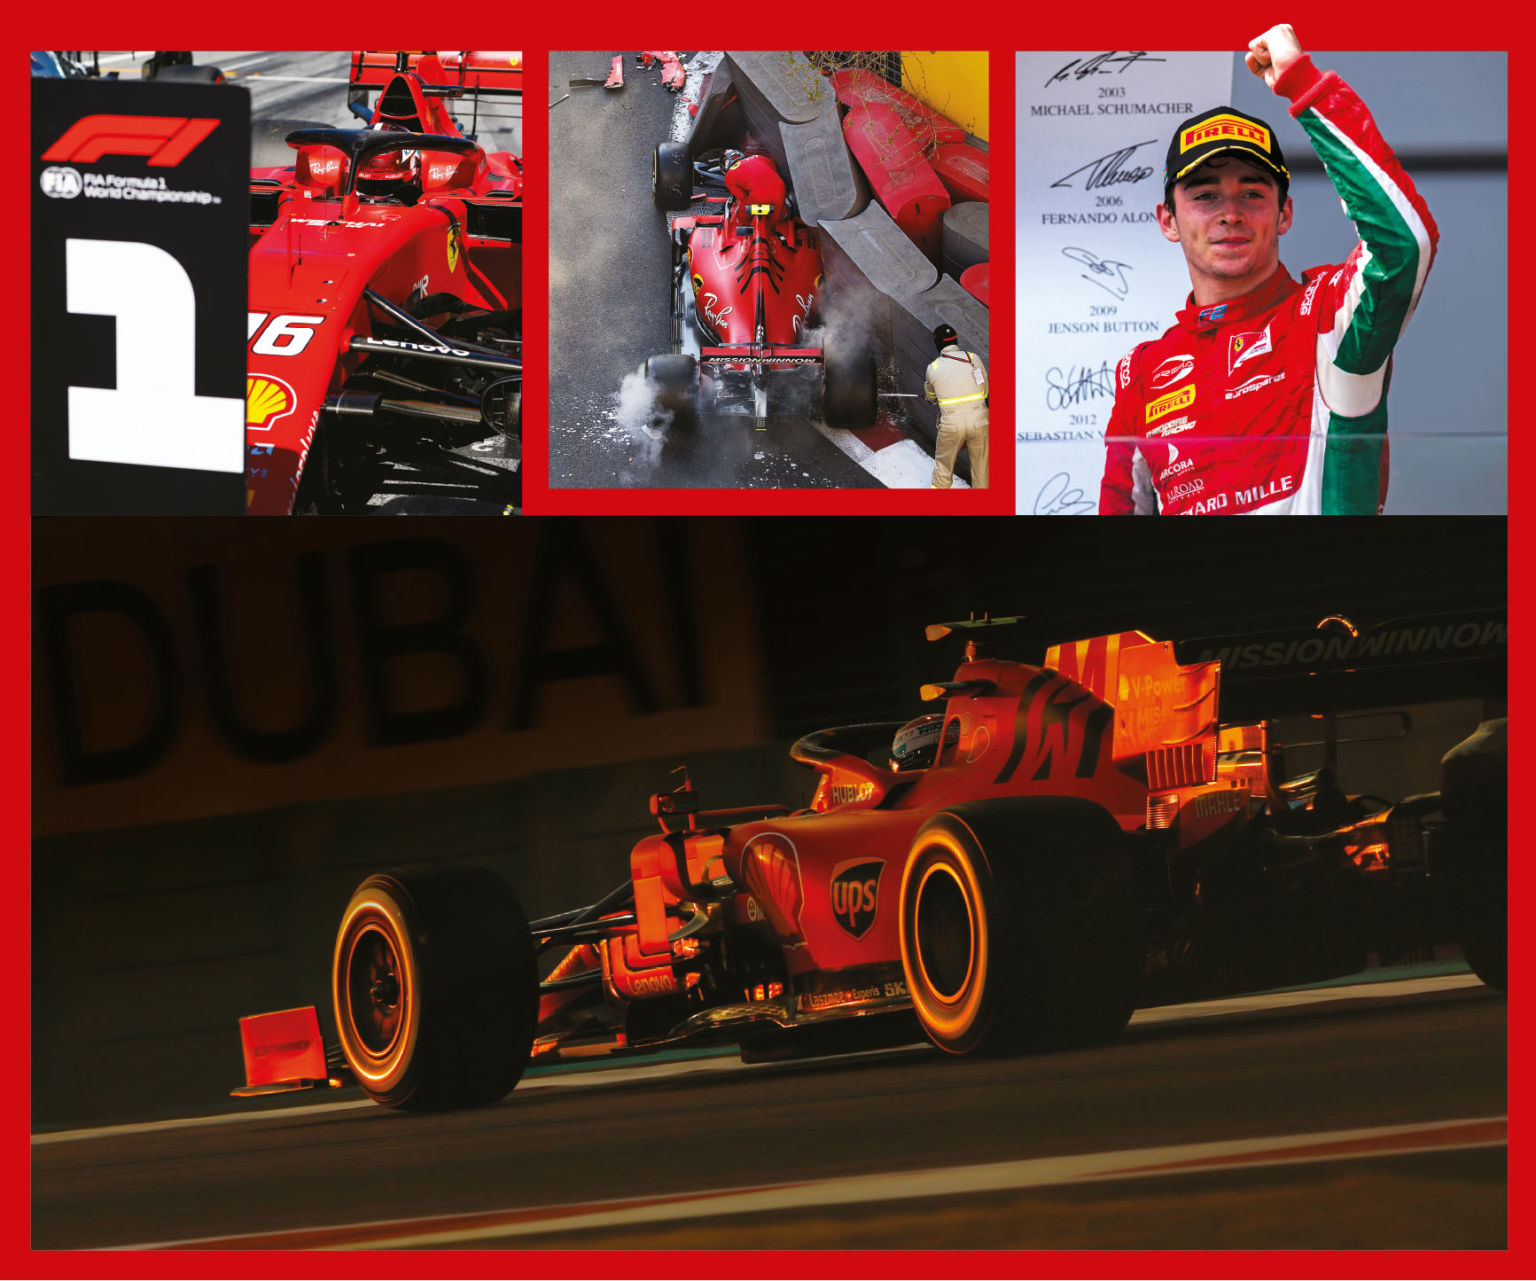 Qualifying mistake in Baku was a low point (top, middle), but F2 success under difficult circumstances proved Leclerc's talent (top, right) and cemented his path to Ferrari